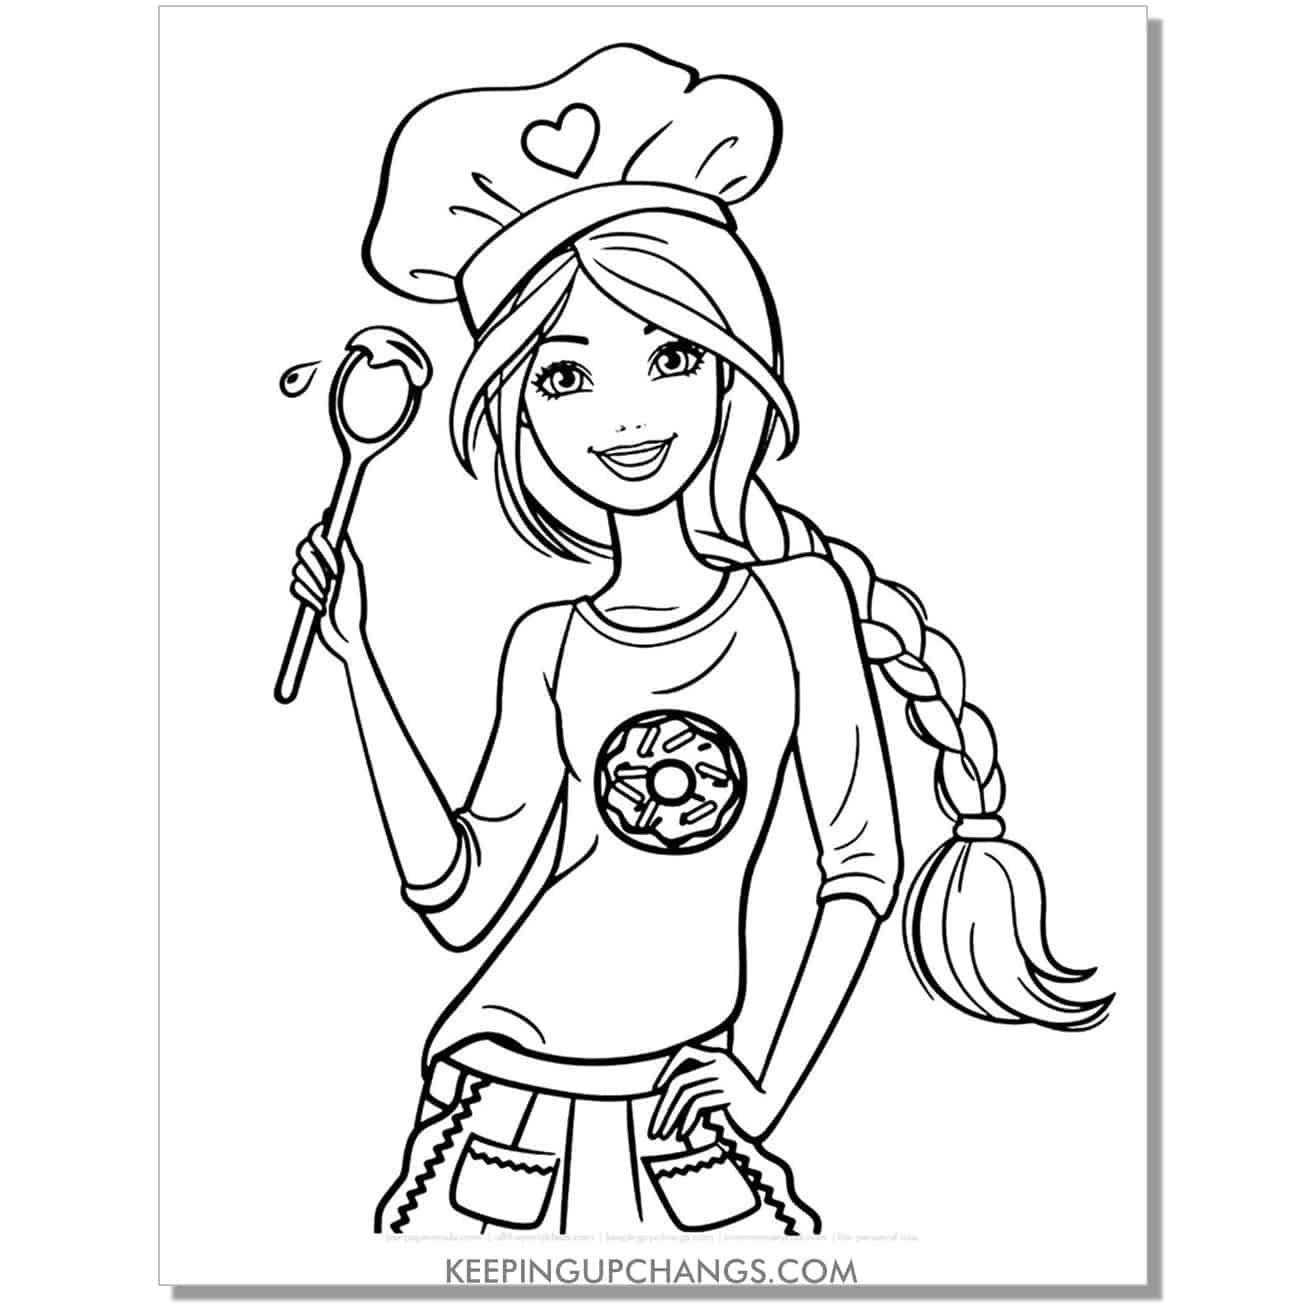 barbie in chef hat, baking spoon, donut t-shirt coloring page.